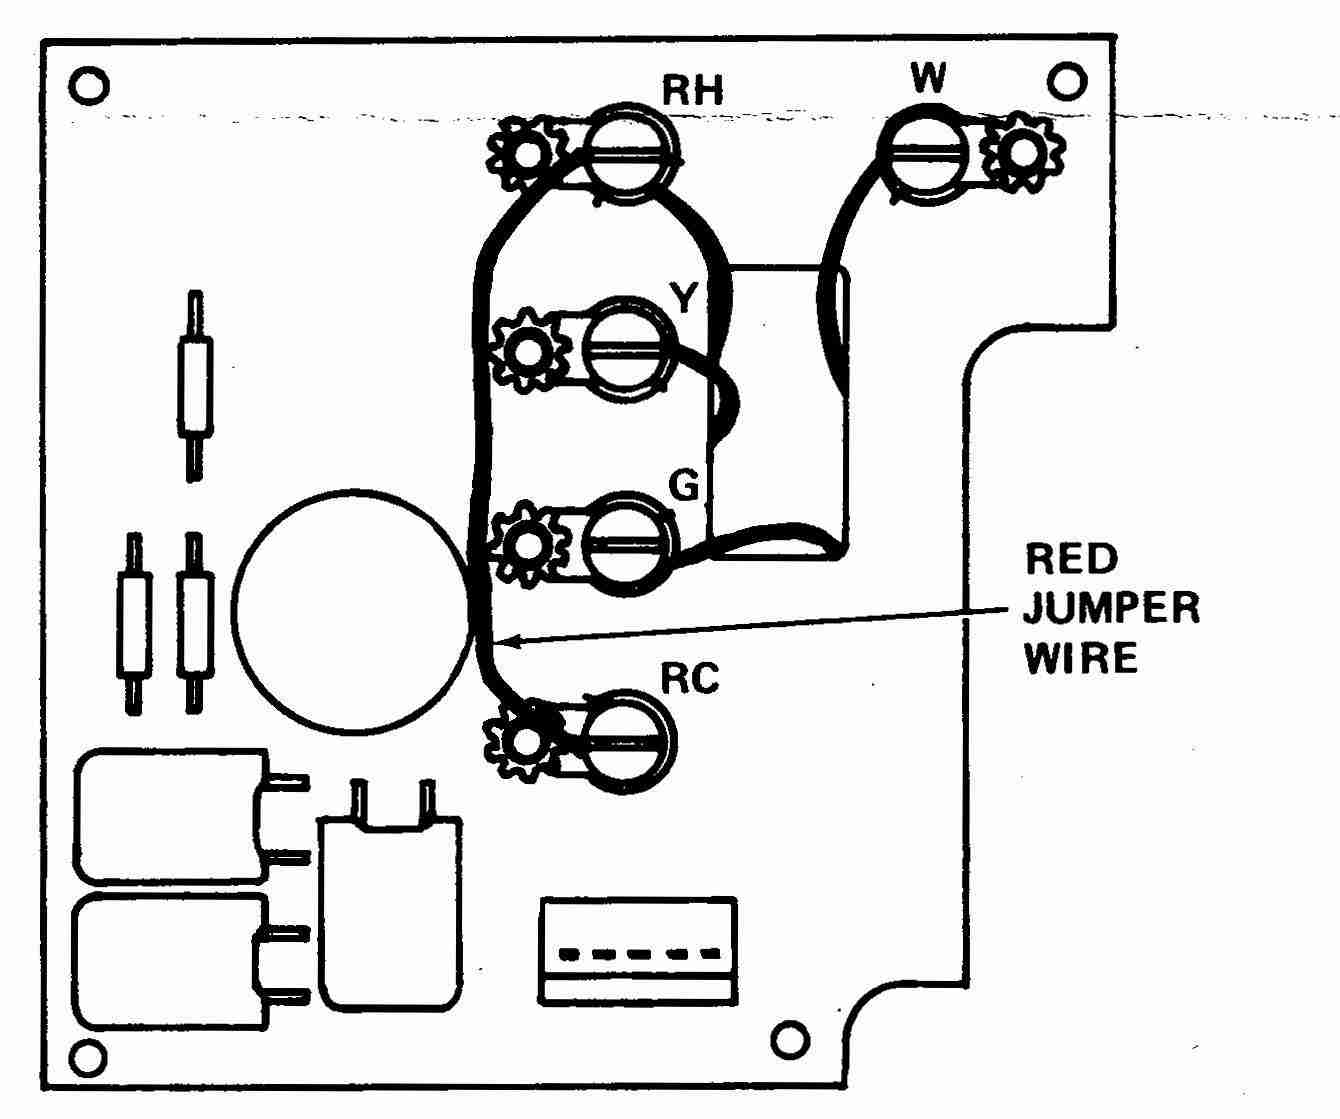 white rodgers zone valve wiring diagram with White Rodgers Control Wiring Diagram on Wiring Diagram White Rodgers Thermostat as well Page 2 in addition Weil Mclain Boilers Zone Valves Wiring Diagram in addition Appliance likewise Underfloor Heating Thermostat Wiring Diagram.